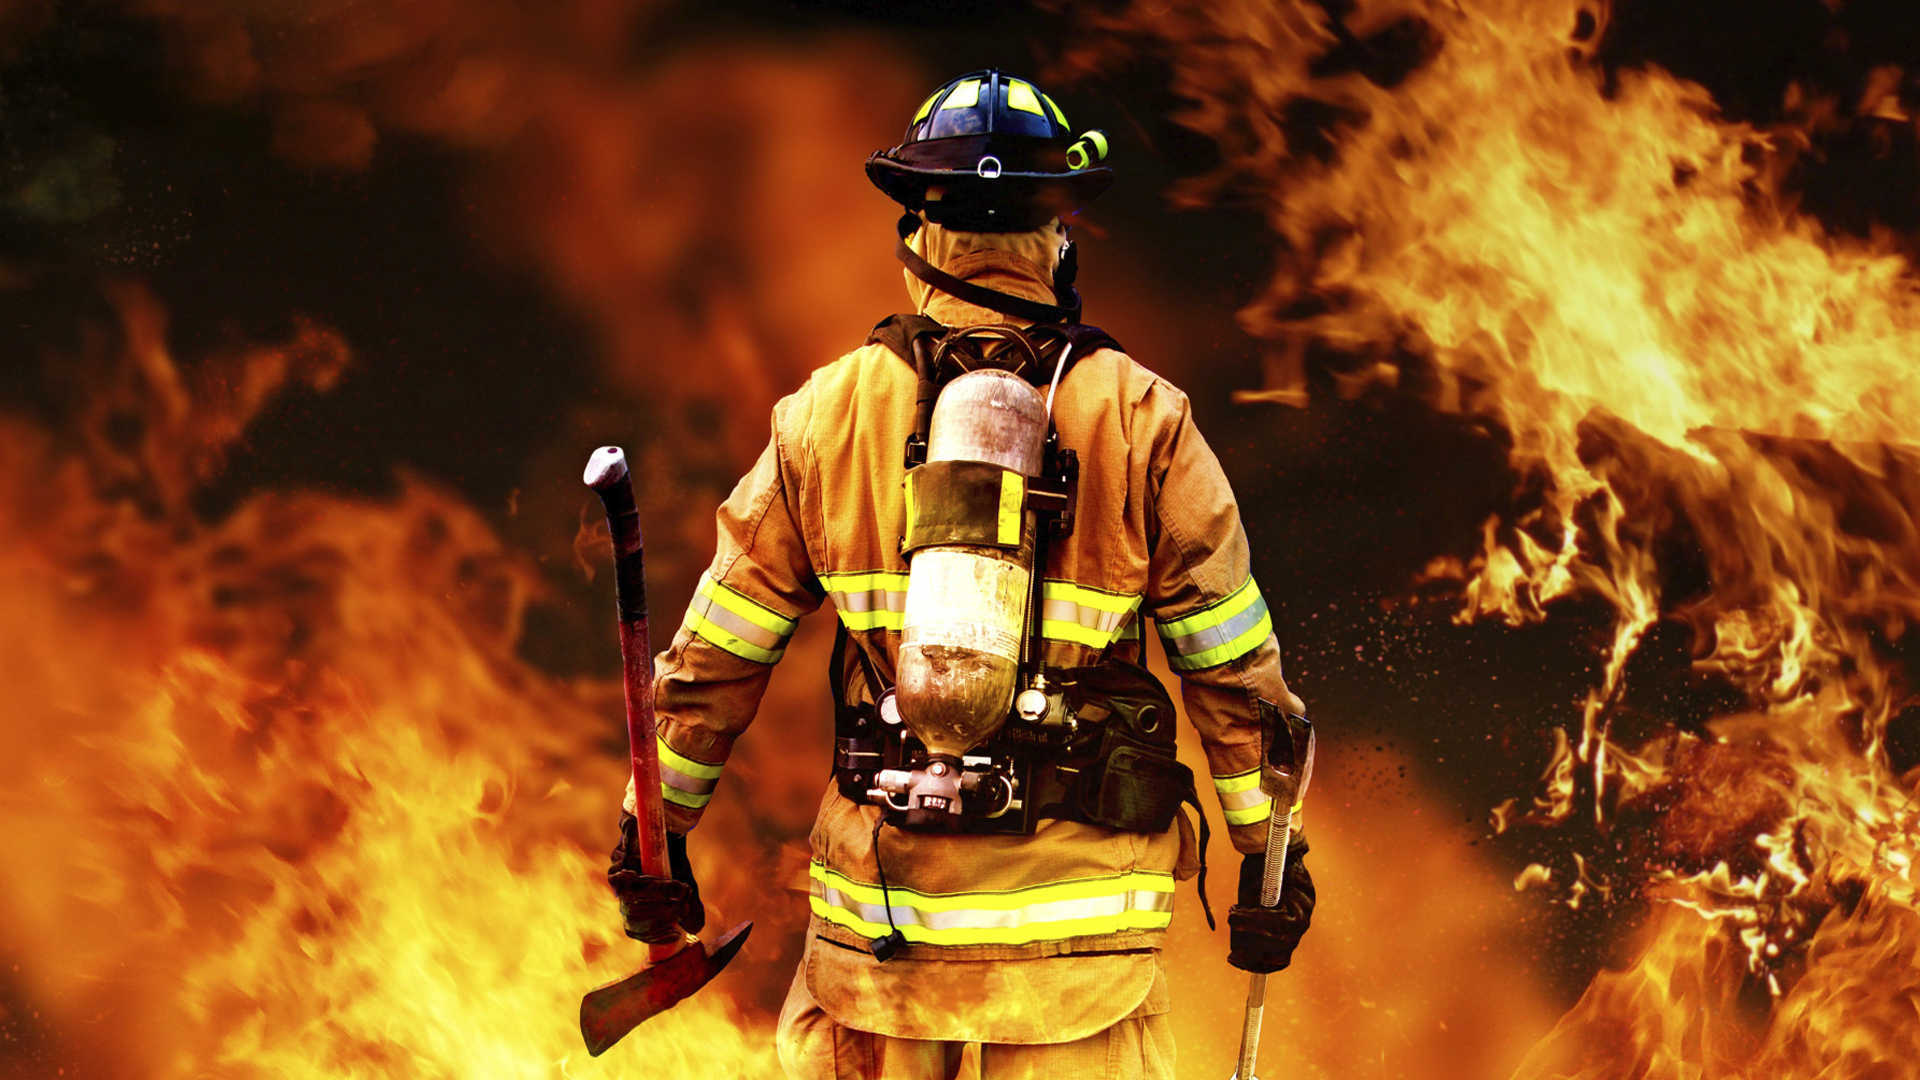 average fireman salary in us hd wallpaper hdwallwide com